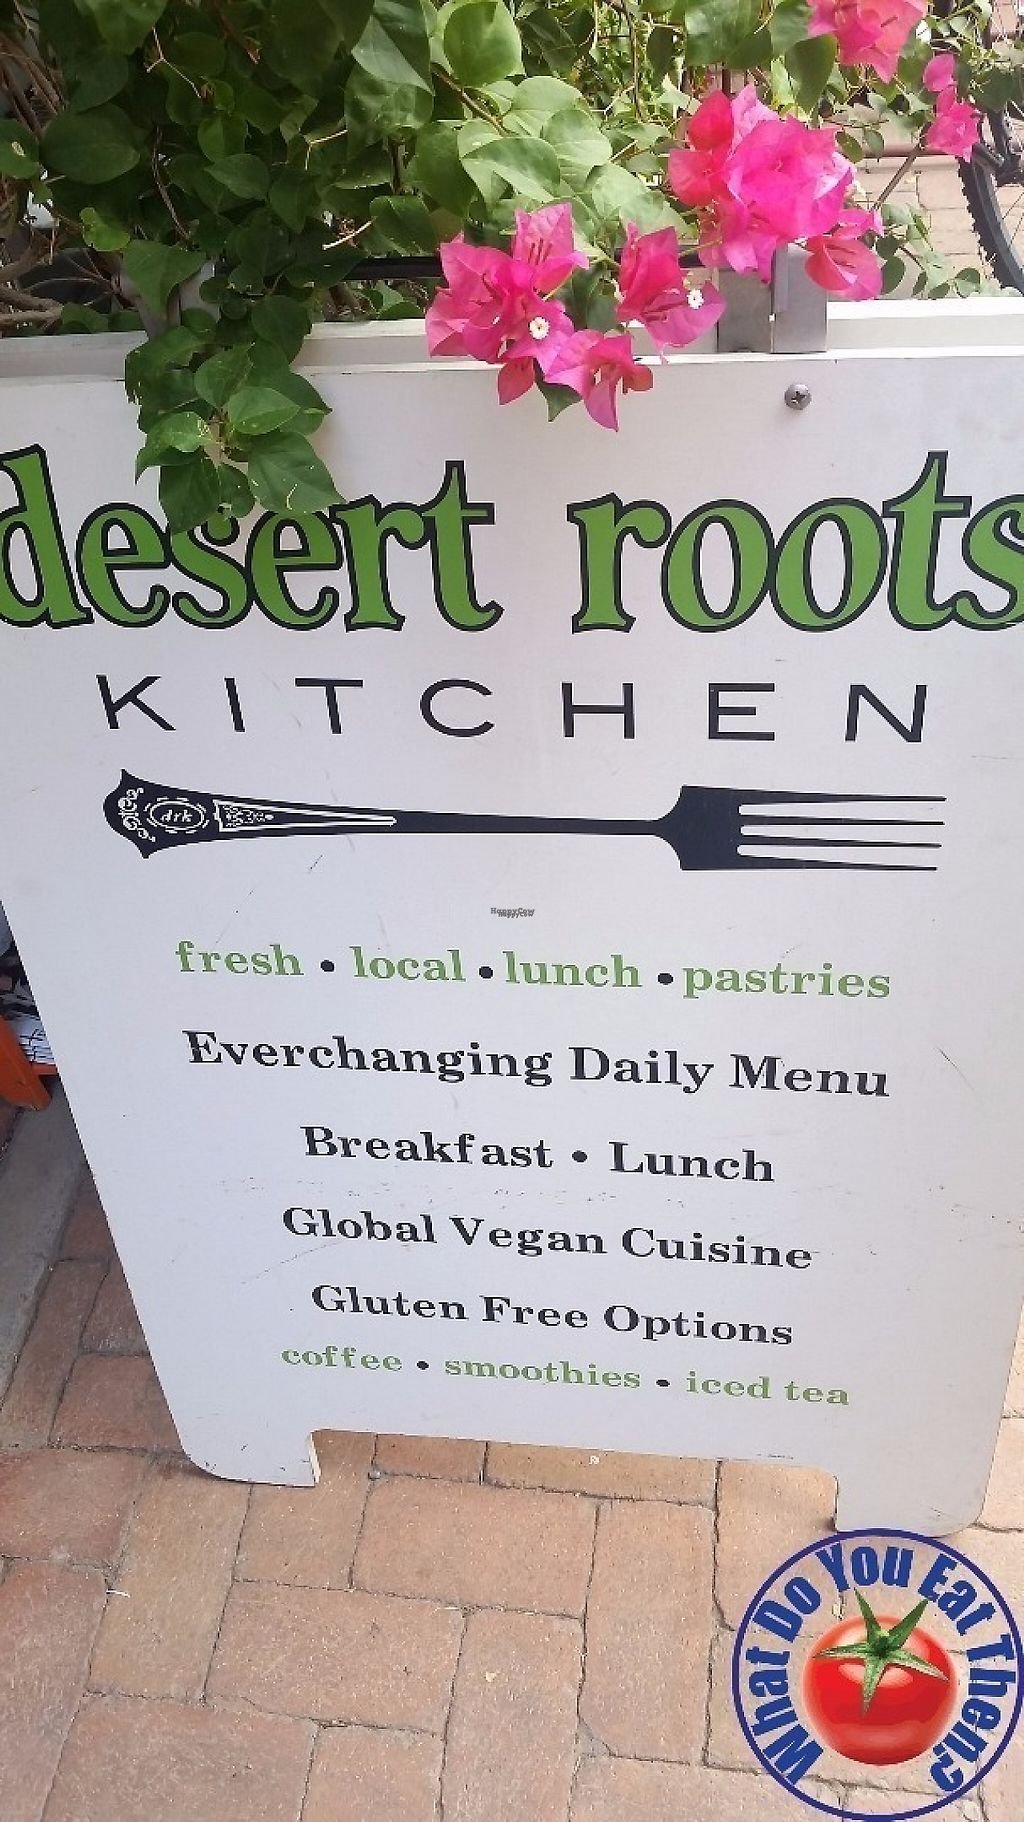 "Photo of Desert Roots Kitchen  by <a href=""/members/profile/WhatDoYouEatThen"">WhatDoYouEatThen</a> <br/>the menu outside of Desert Roots Kitchen <br/> December 17, 2016  - <a href='/contact/abuse/image/9333/202147'>Report</a>"